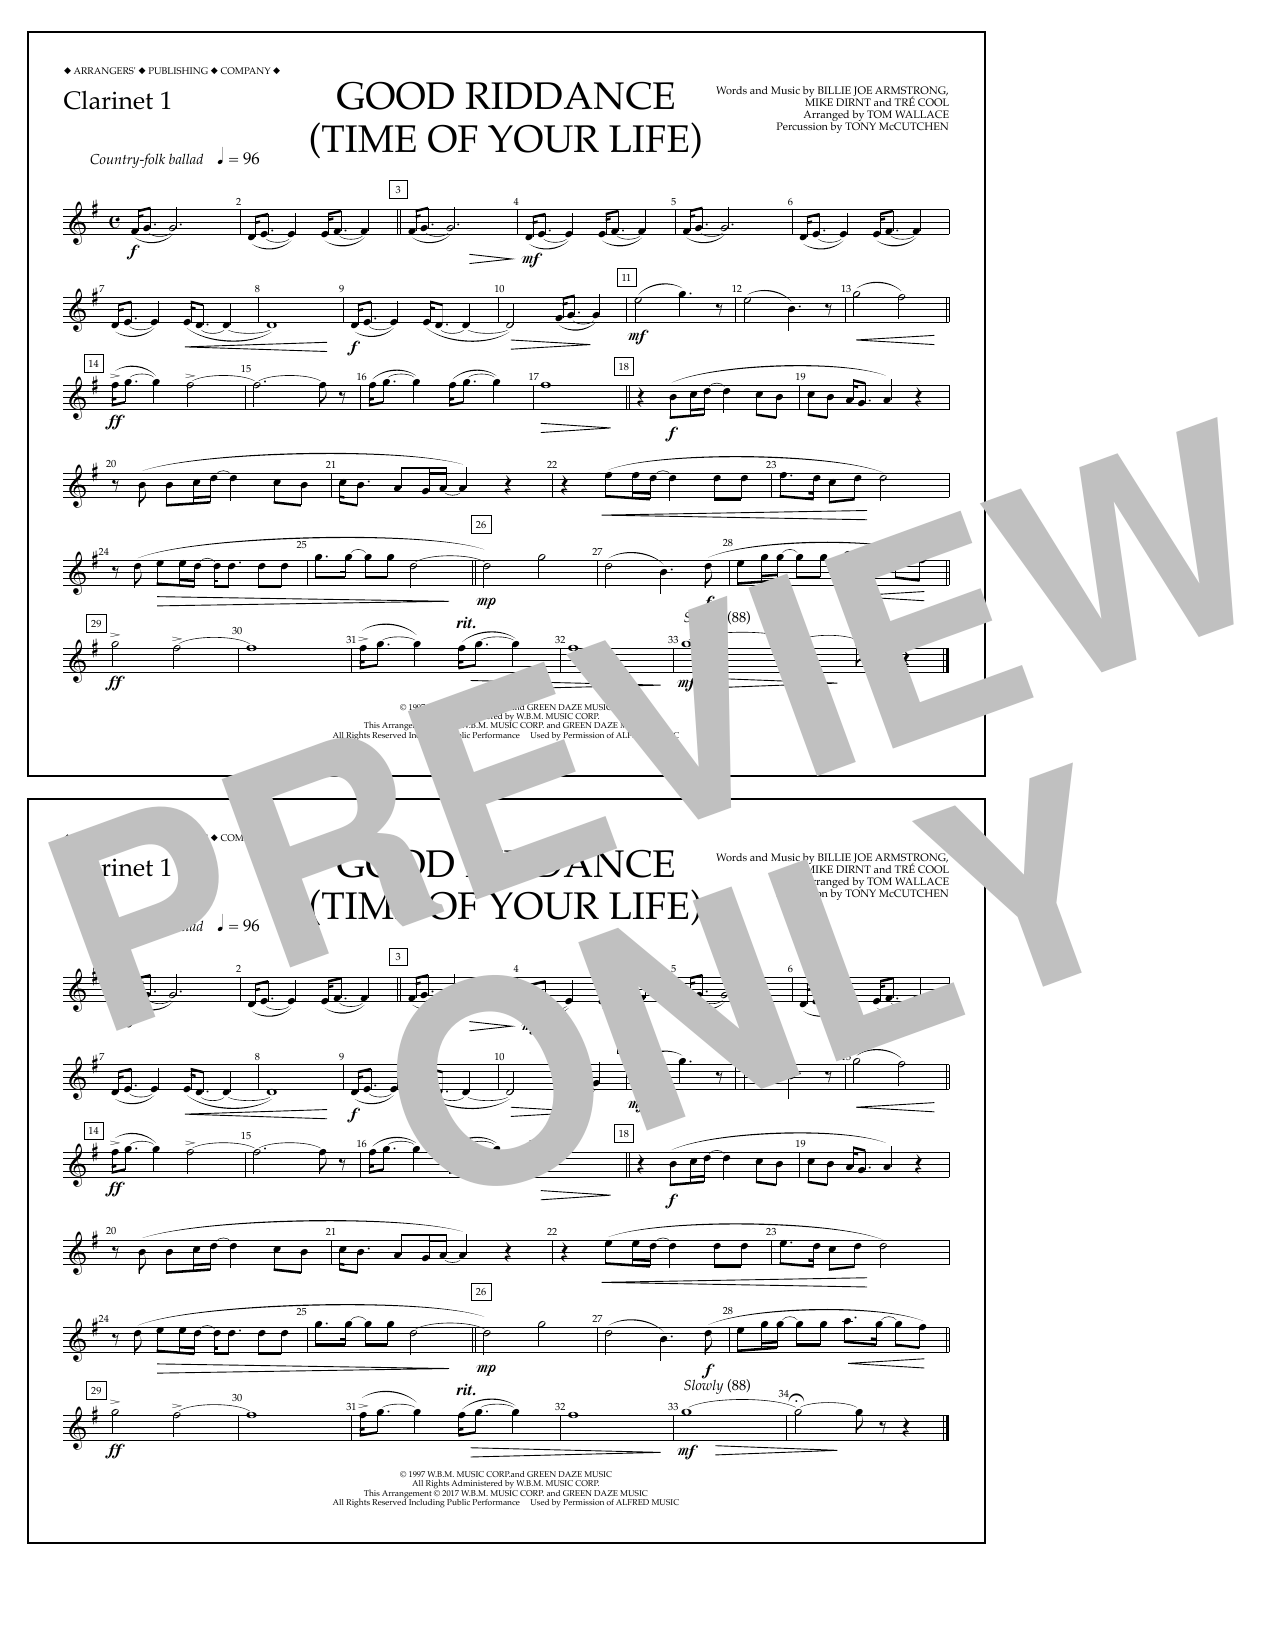 Good Riddance (Time of Your Life) - Clarinet 1 Sheet Music